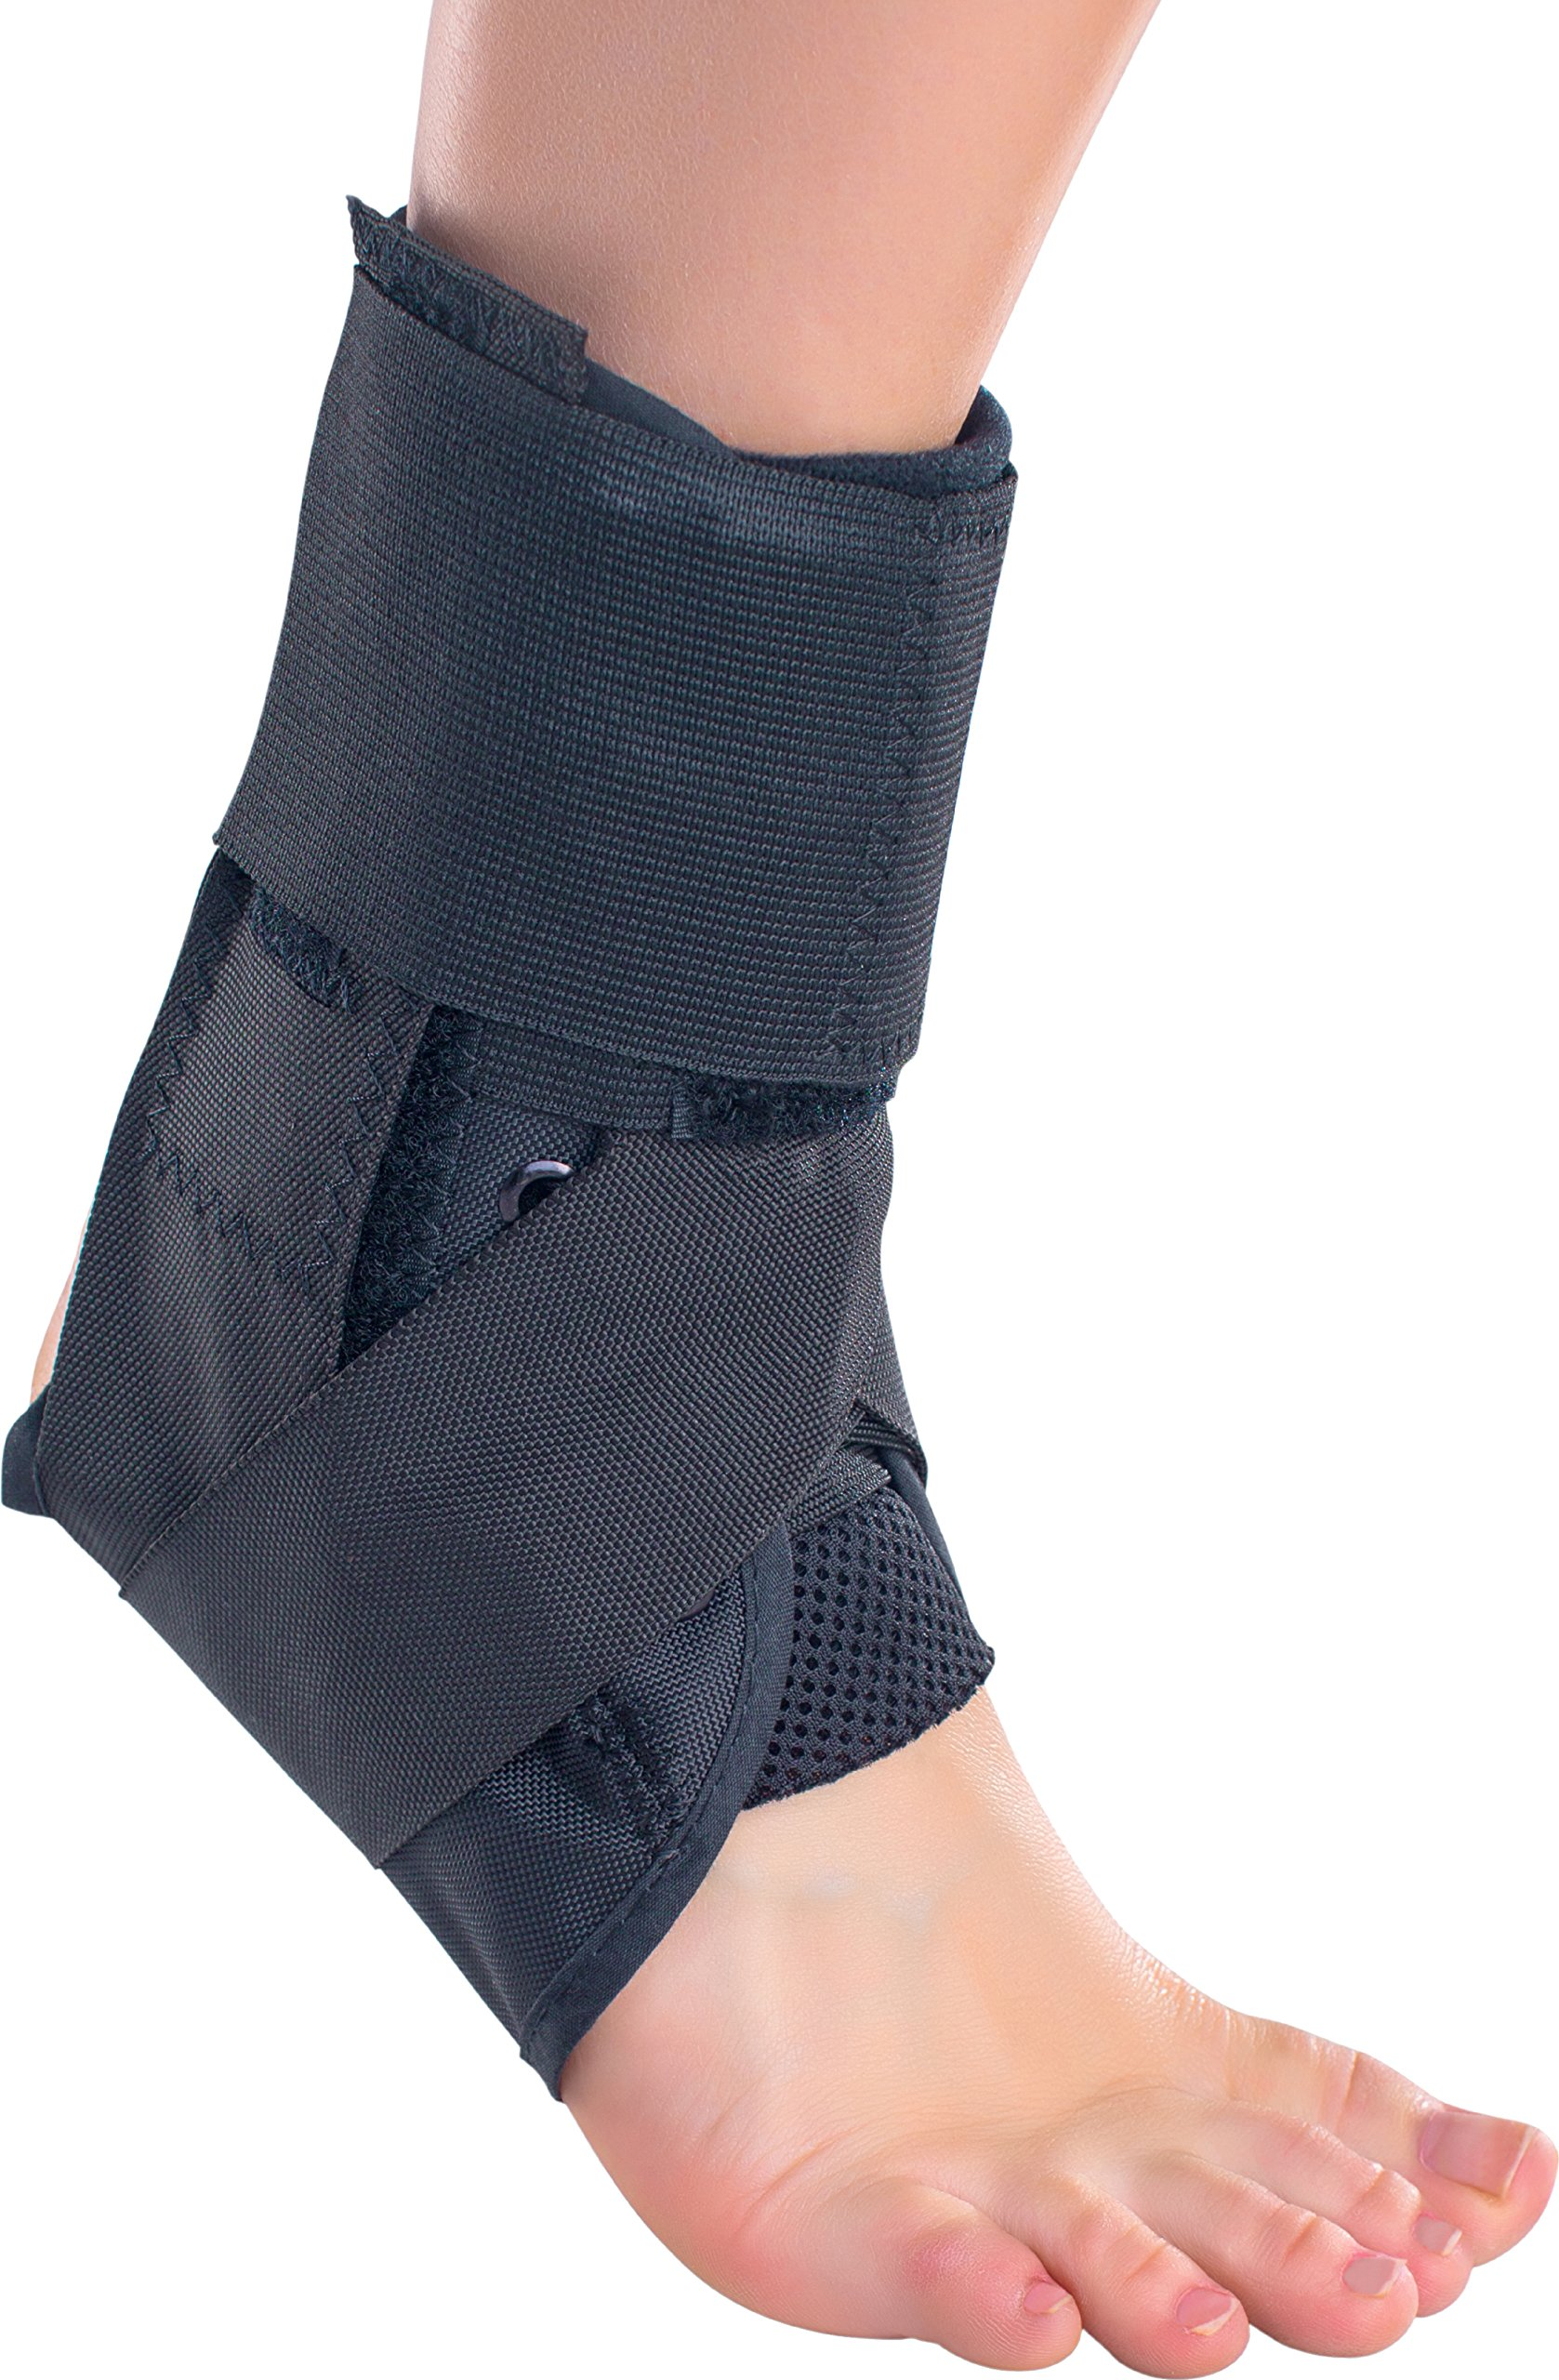 ProCare Stabilized Ankle Support - Medium by ProCare